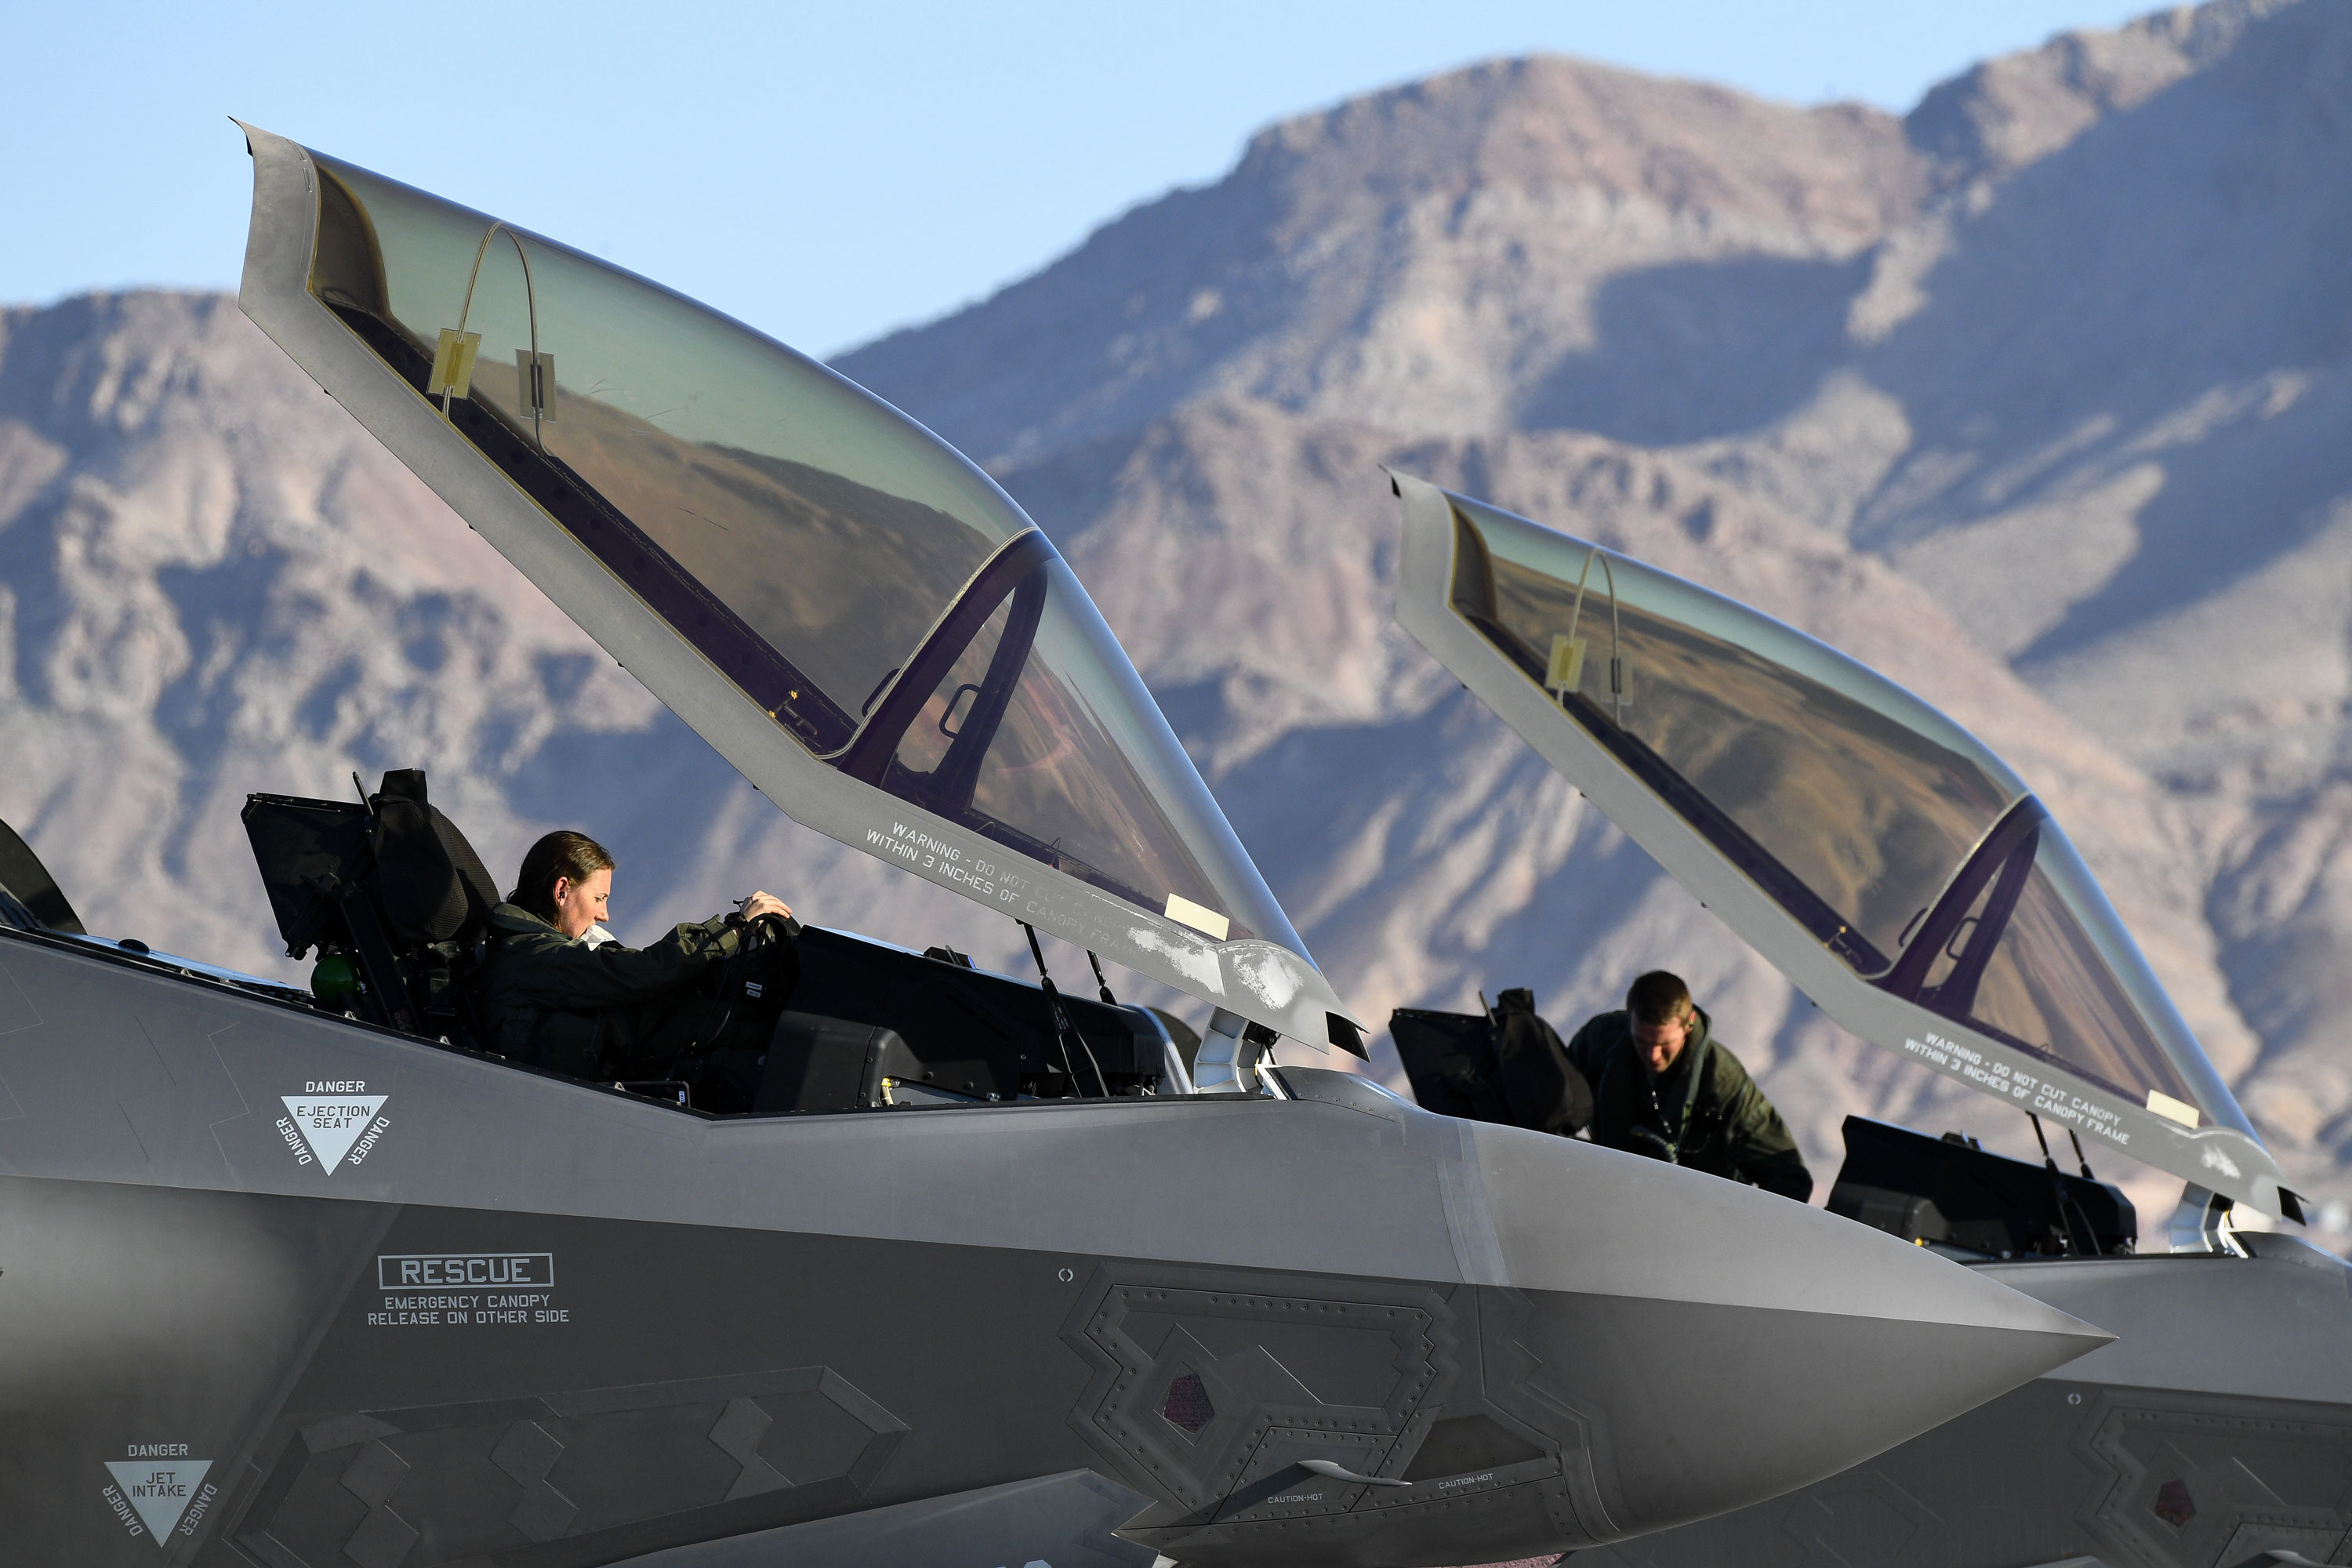 The US Air Force is removing height restrictions for pilots, which will allow more women to serve